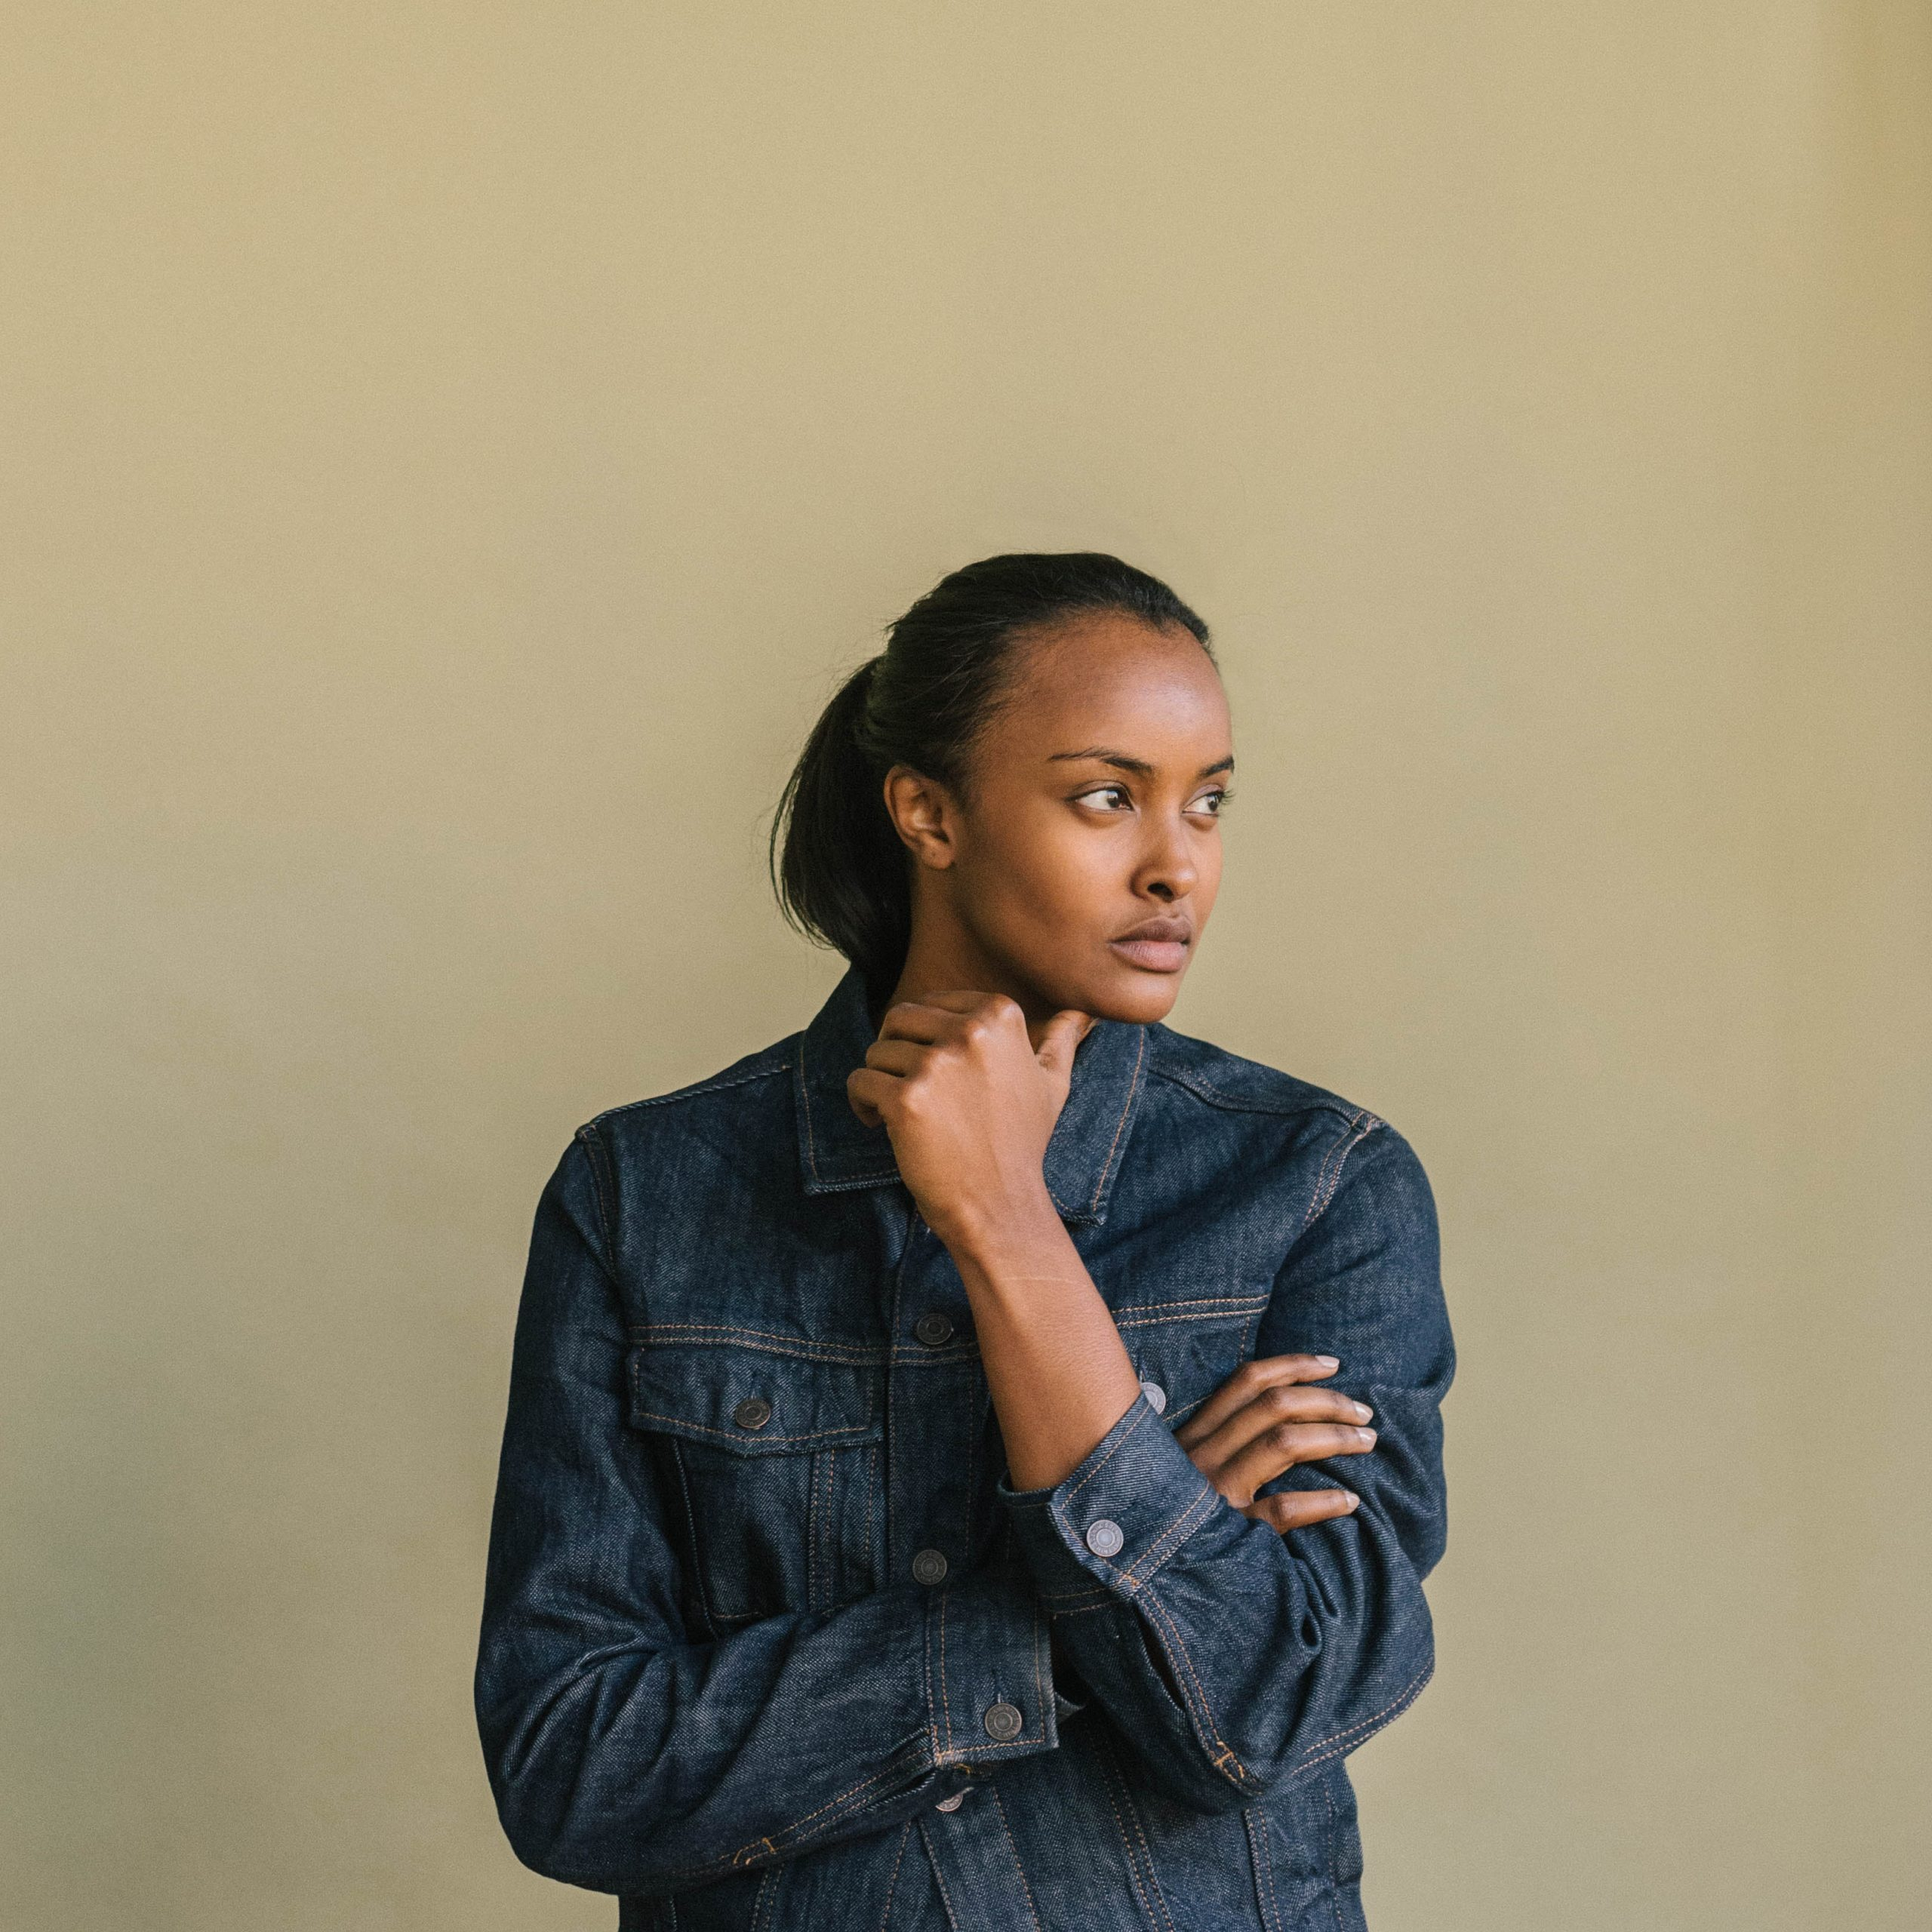 A figure in a denim shirt looks away from the camera